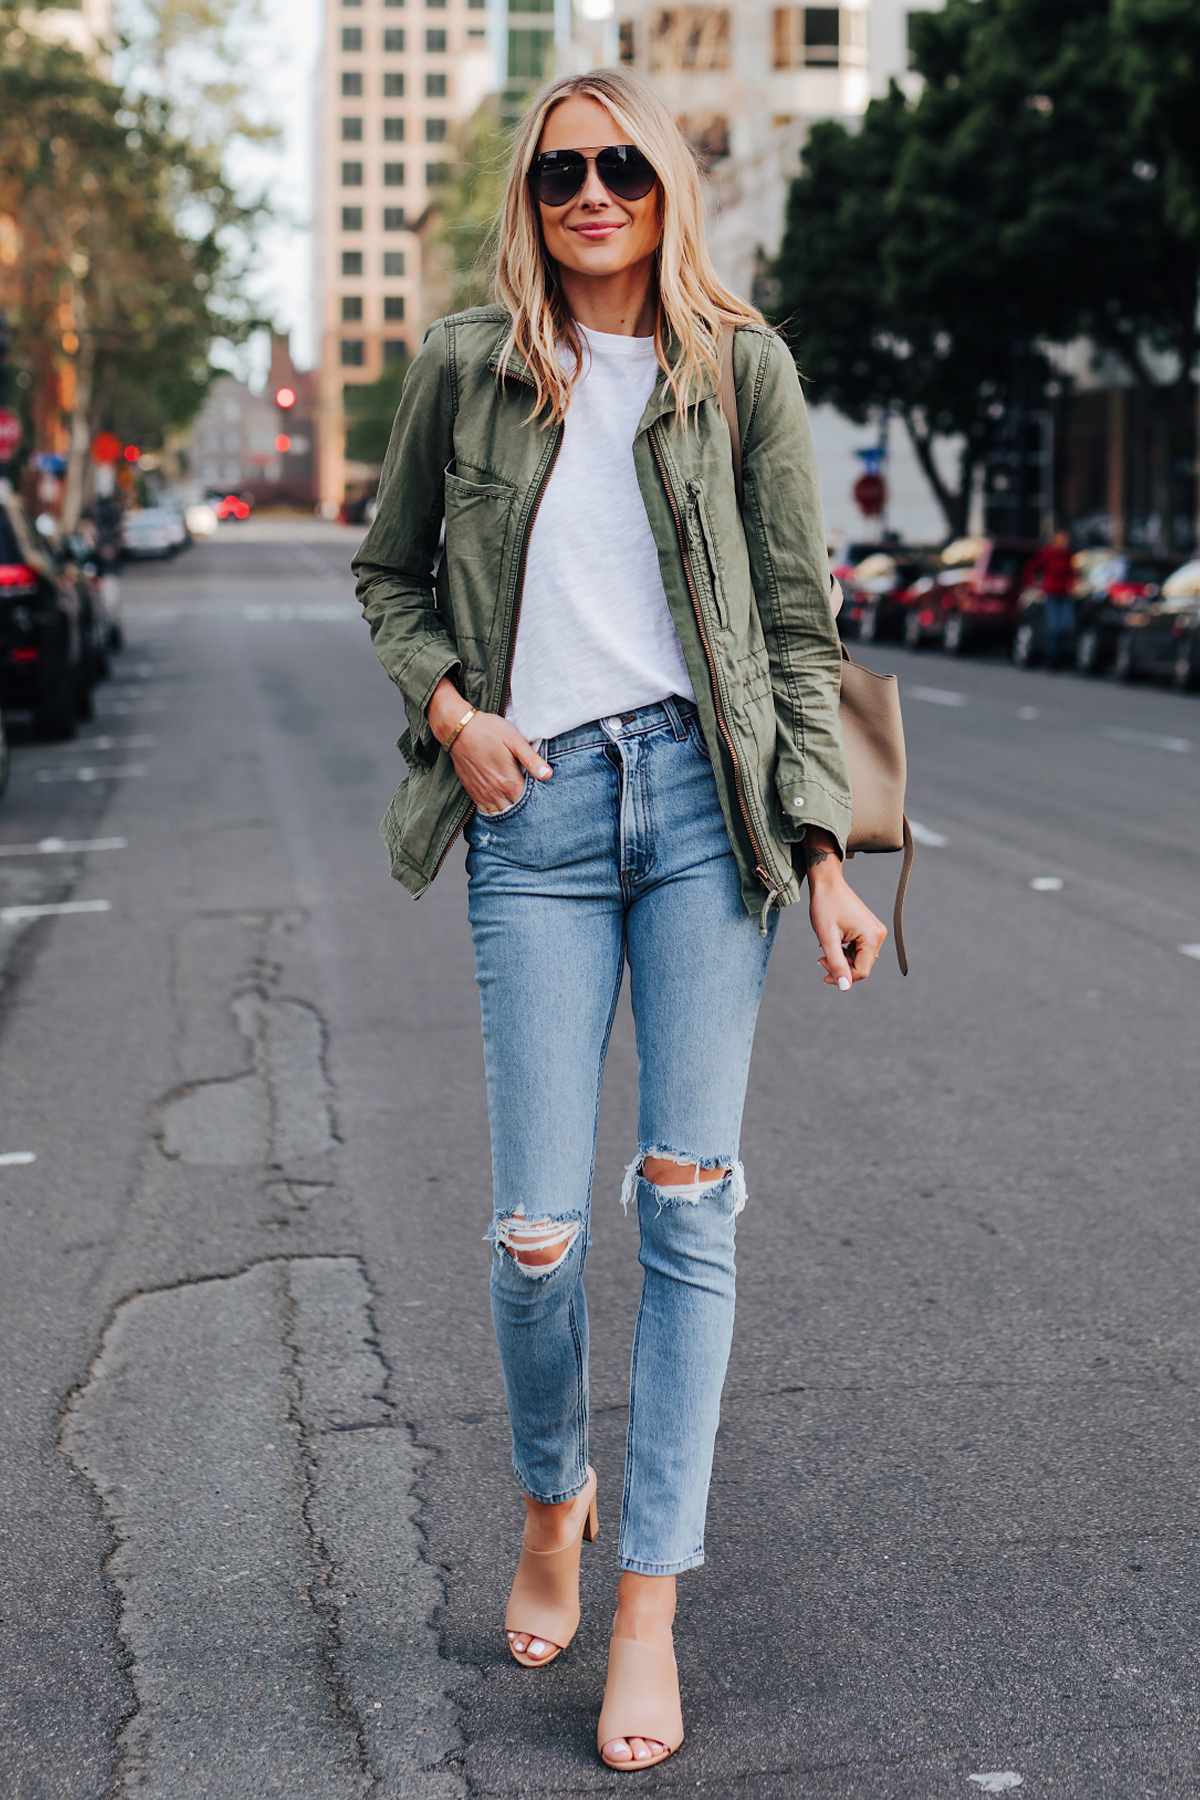 ashion-Jackson-Wearing-Madewell-Green-Utility-Jacket-ATM-White-Tshirt-Reformation-Ripped-Skinny-Jeans-Vince-Hanna-Nude-Heeled-Mules